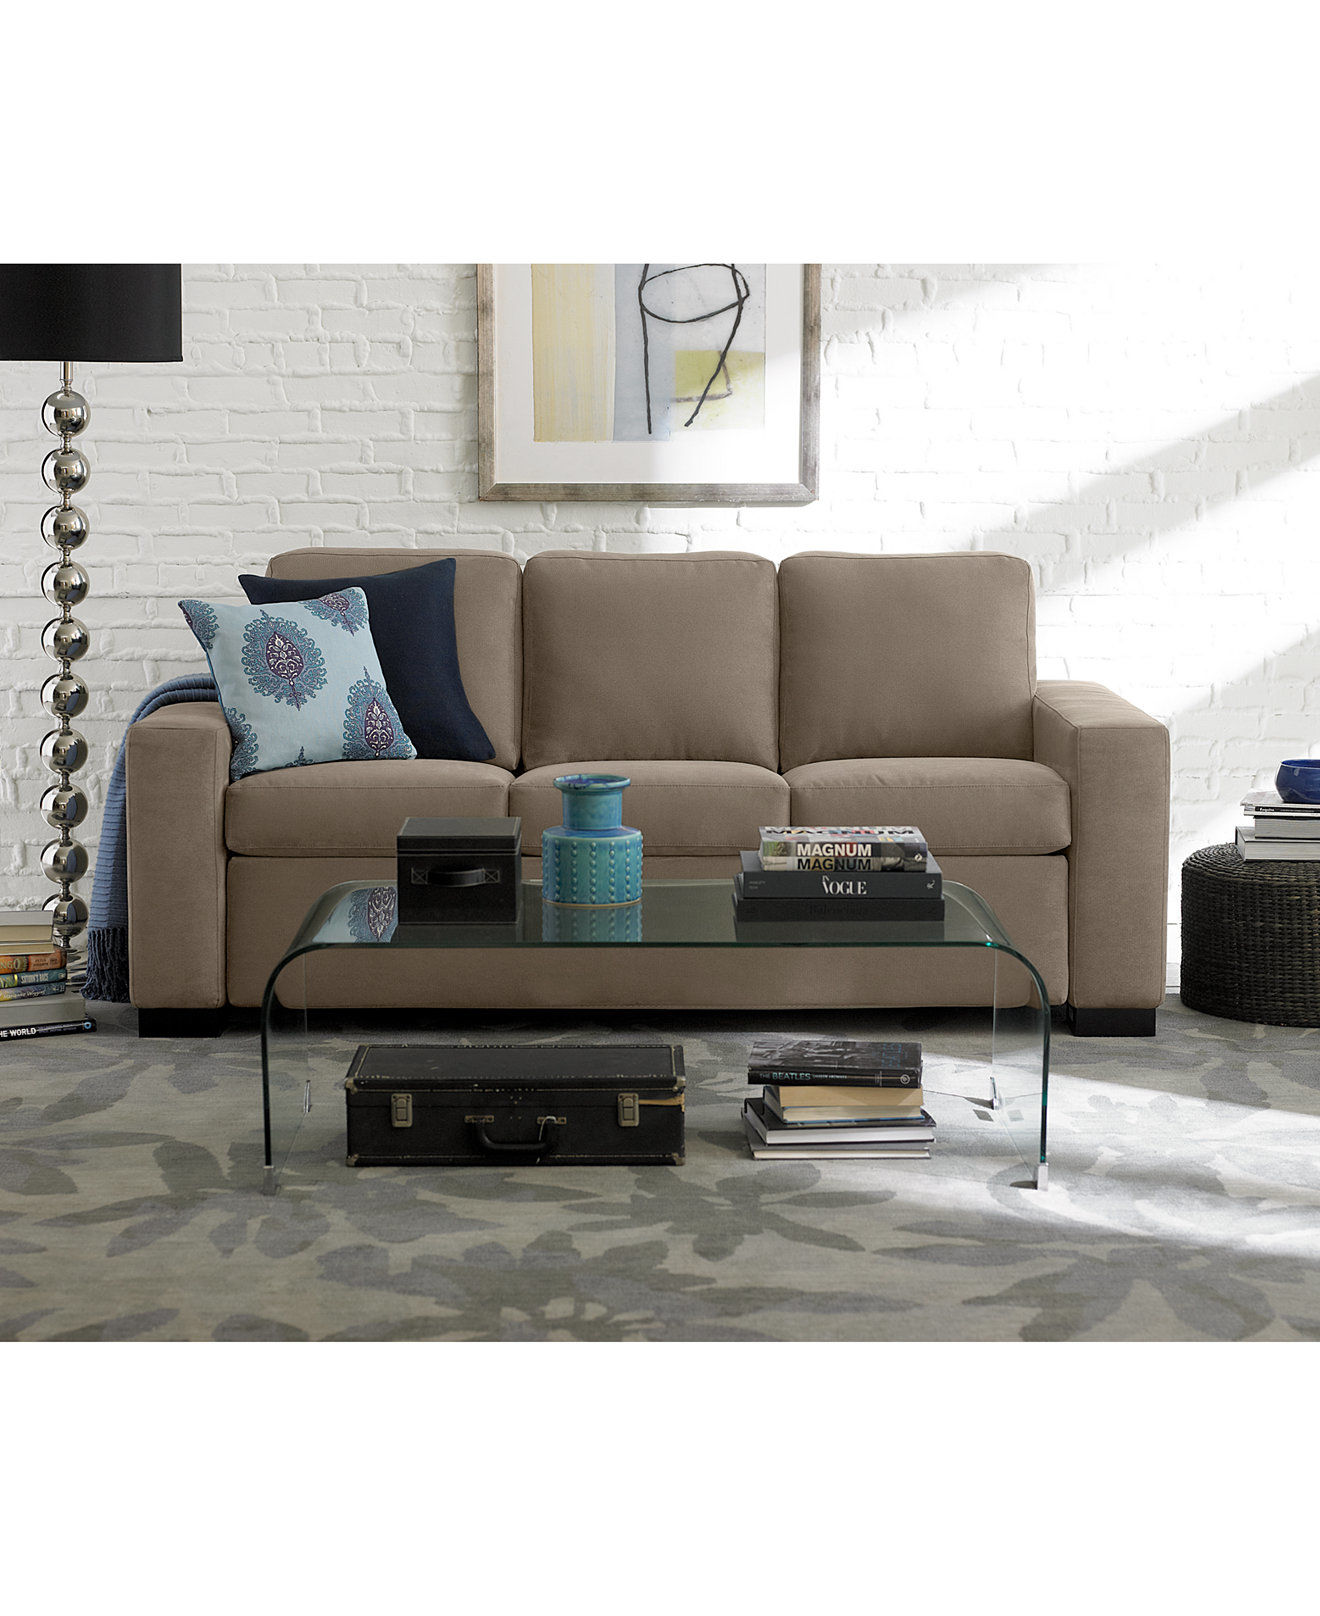 contemporary sofa bed macys collection-Stunning sofa Bed Macys Collection